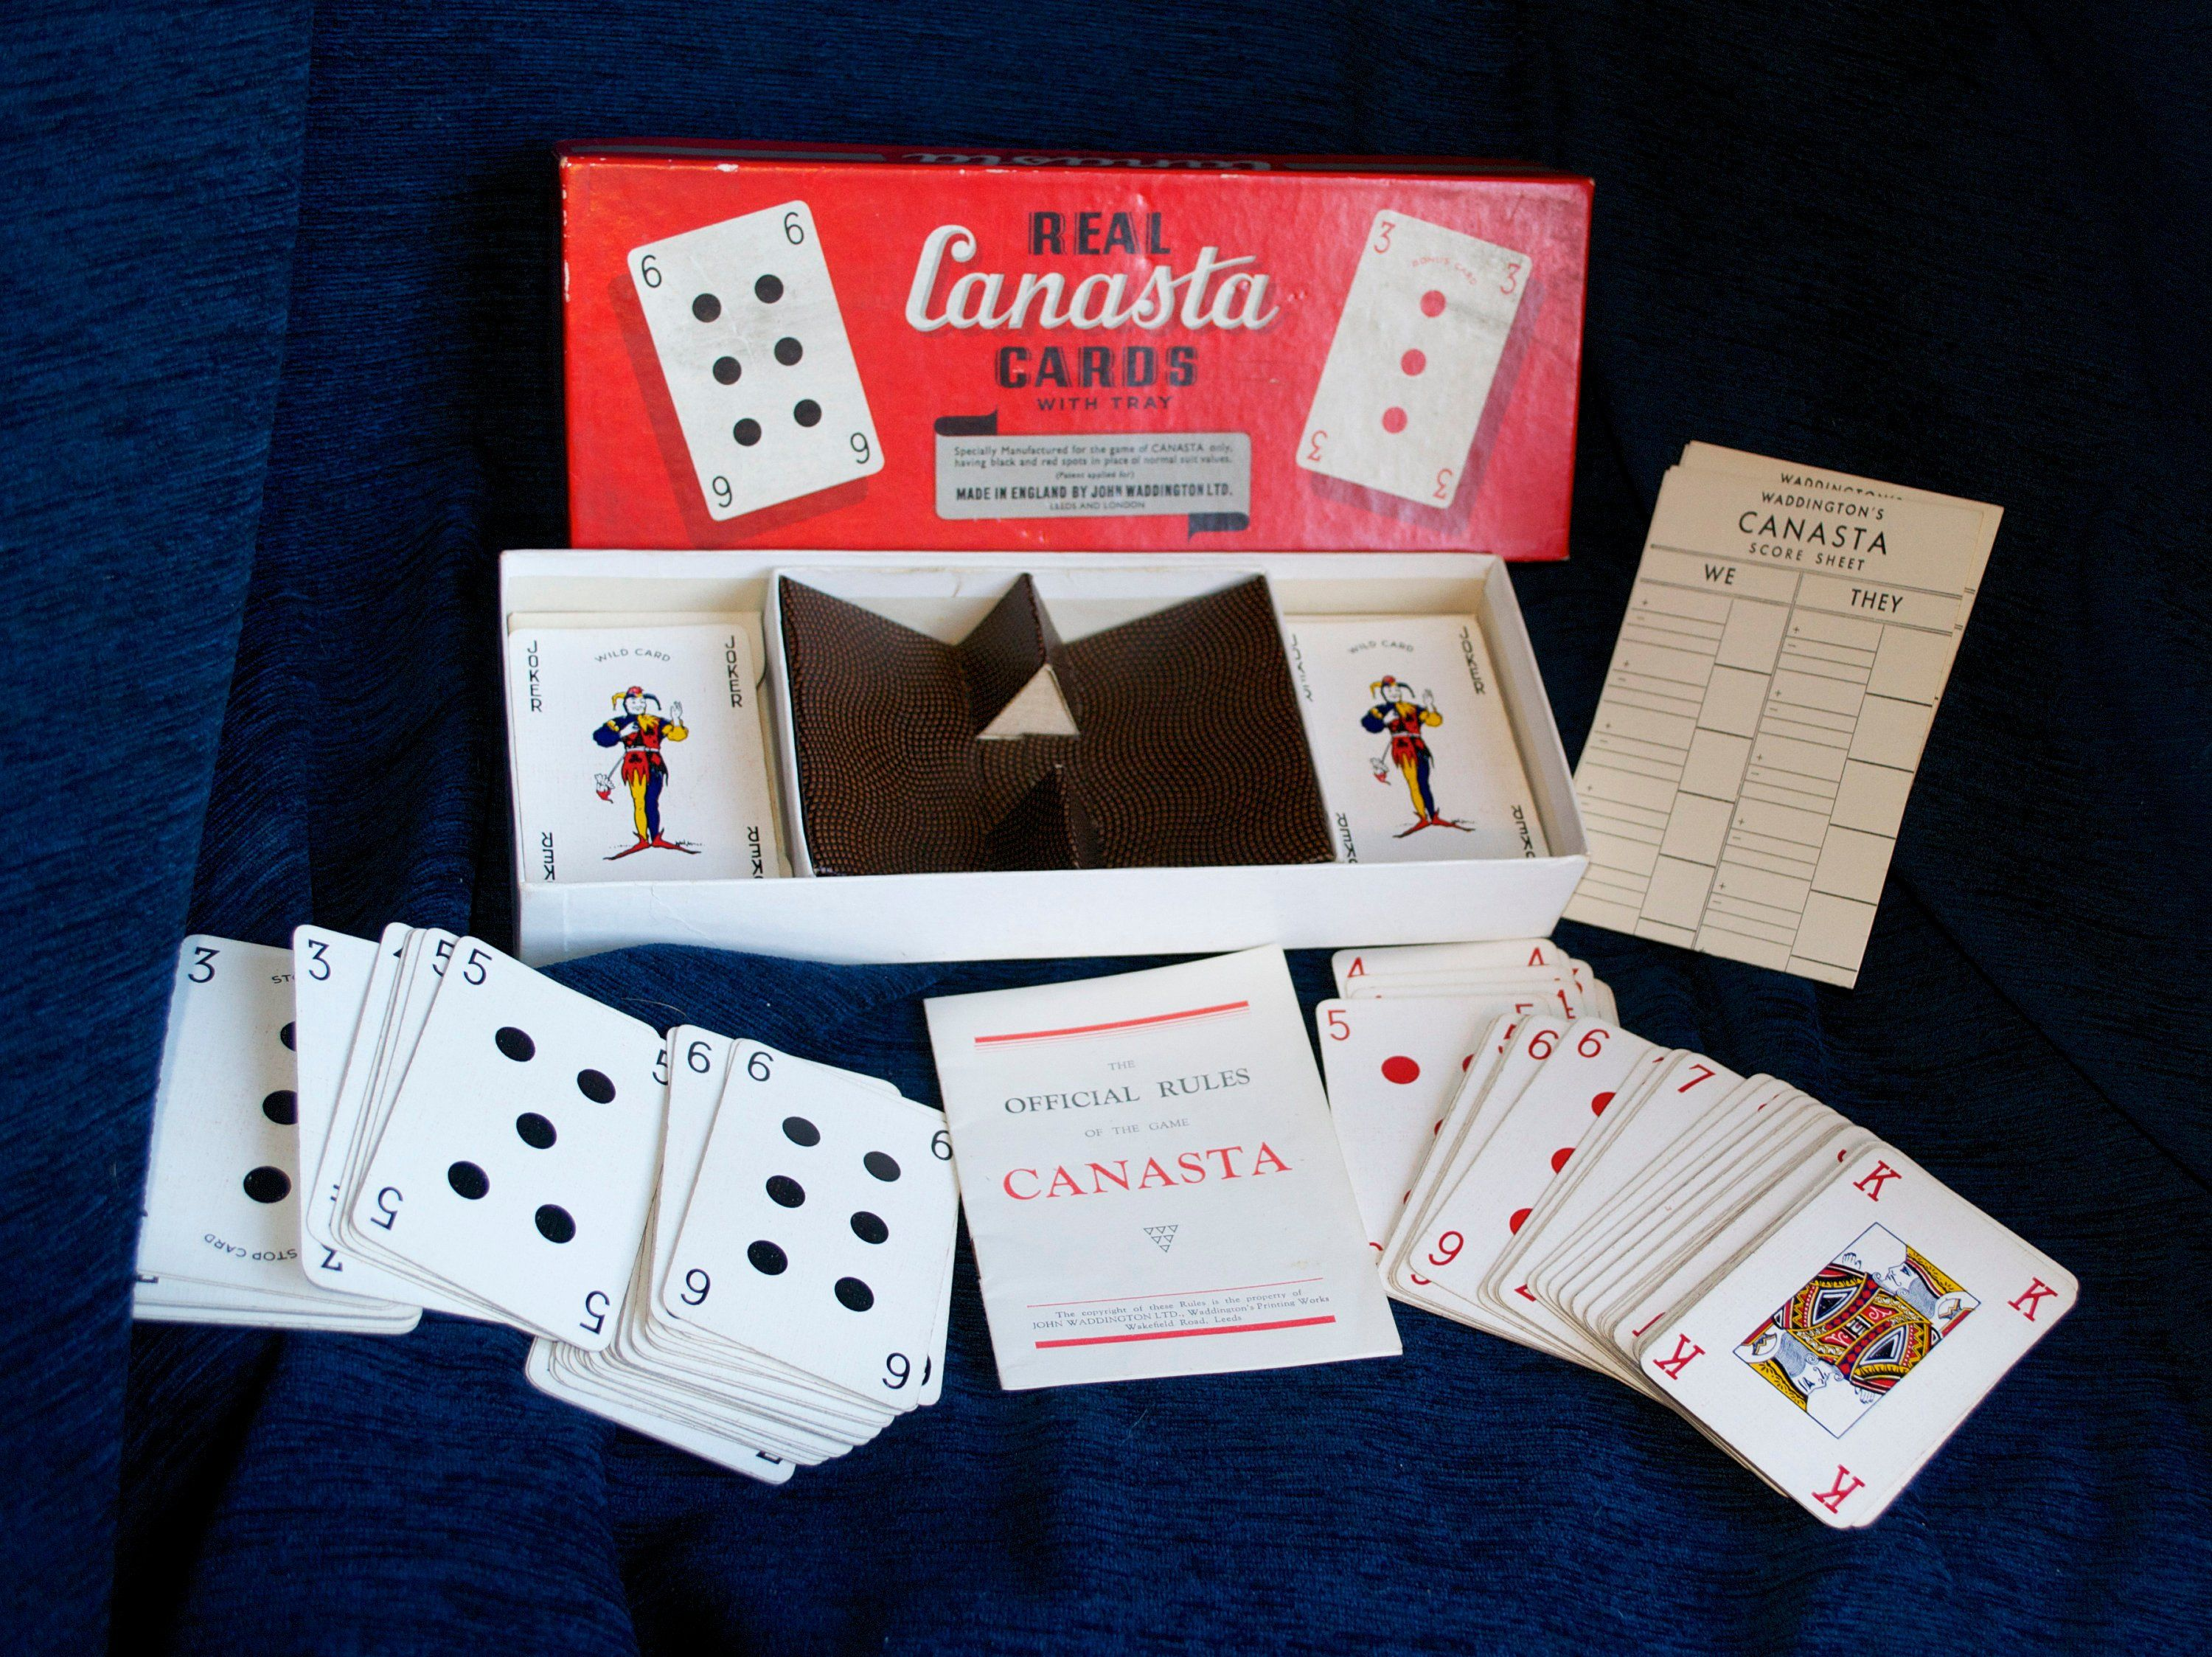 Vintage Waddington's Real Canasta Cards with Tray 1950's